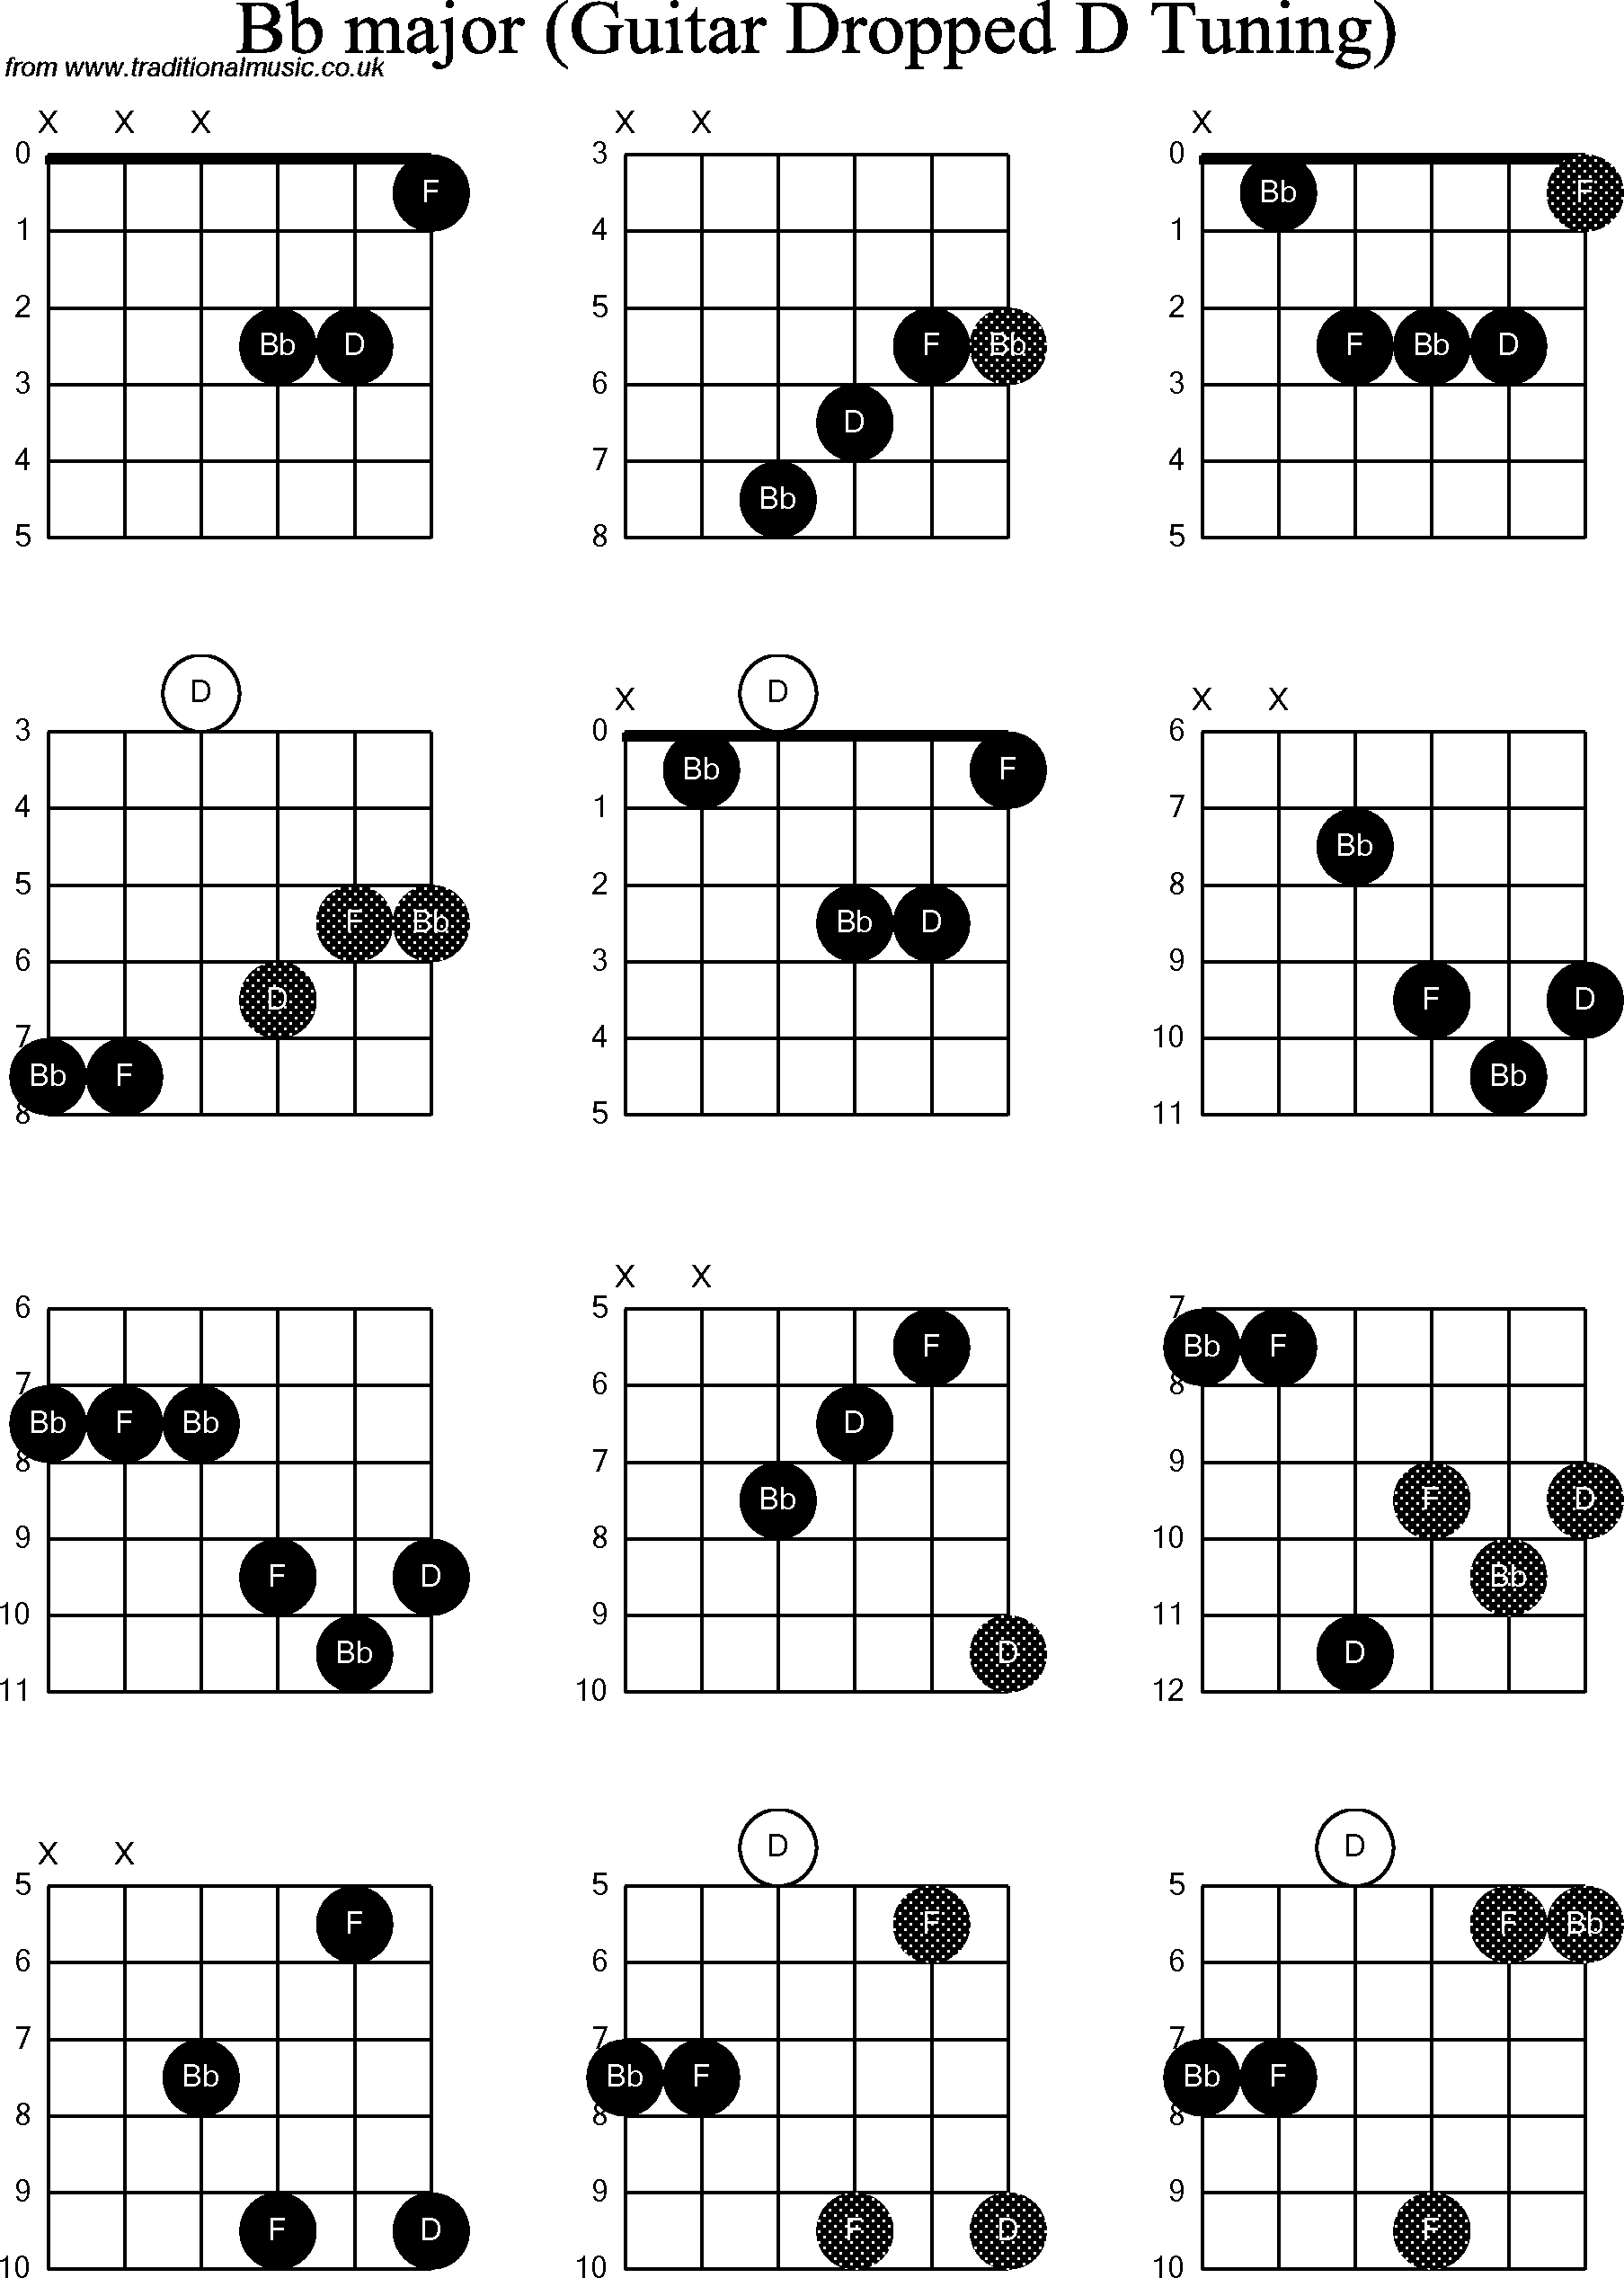 Chord Diagrams For Dropped D Guitardadgbe Bb